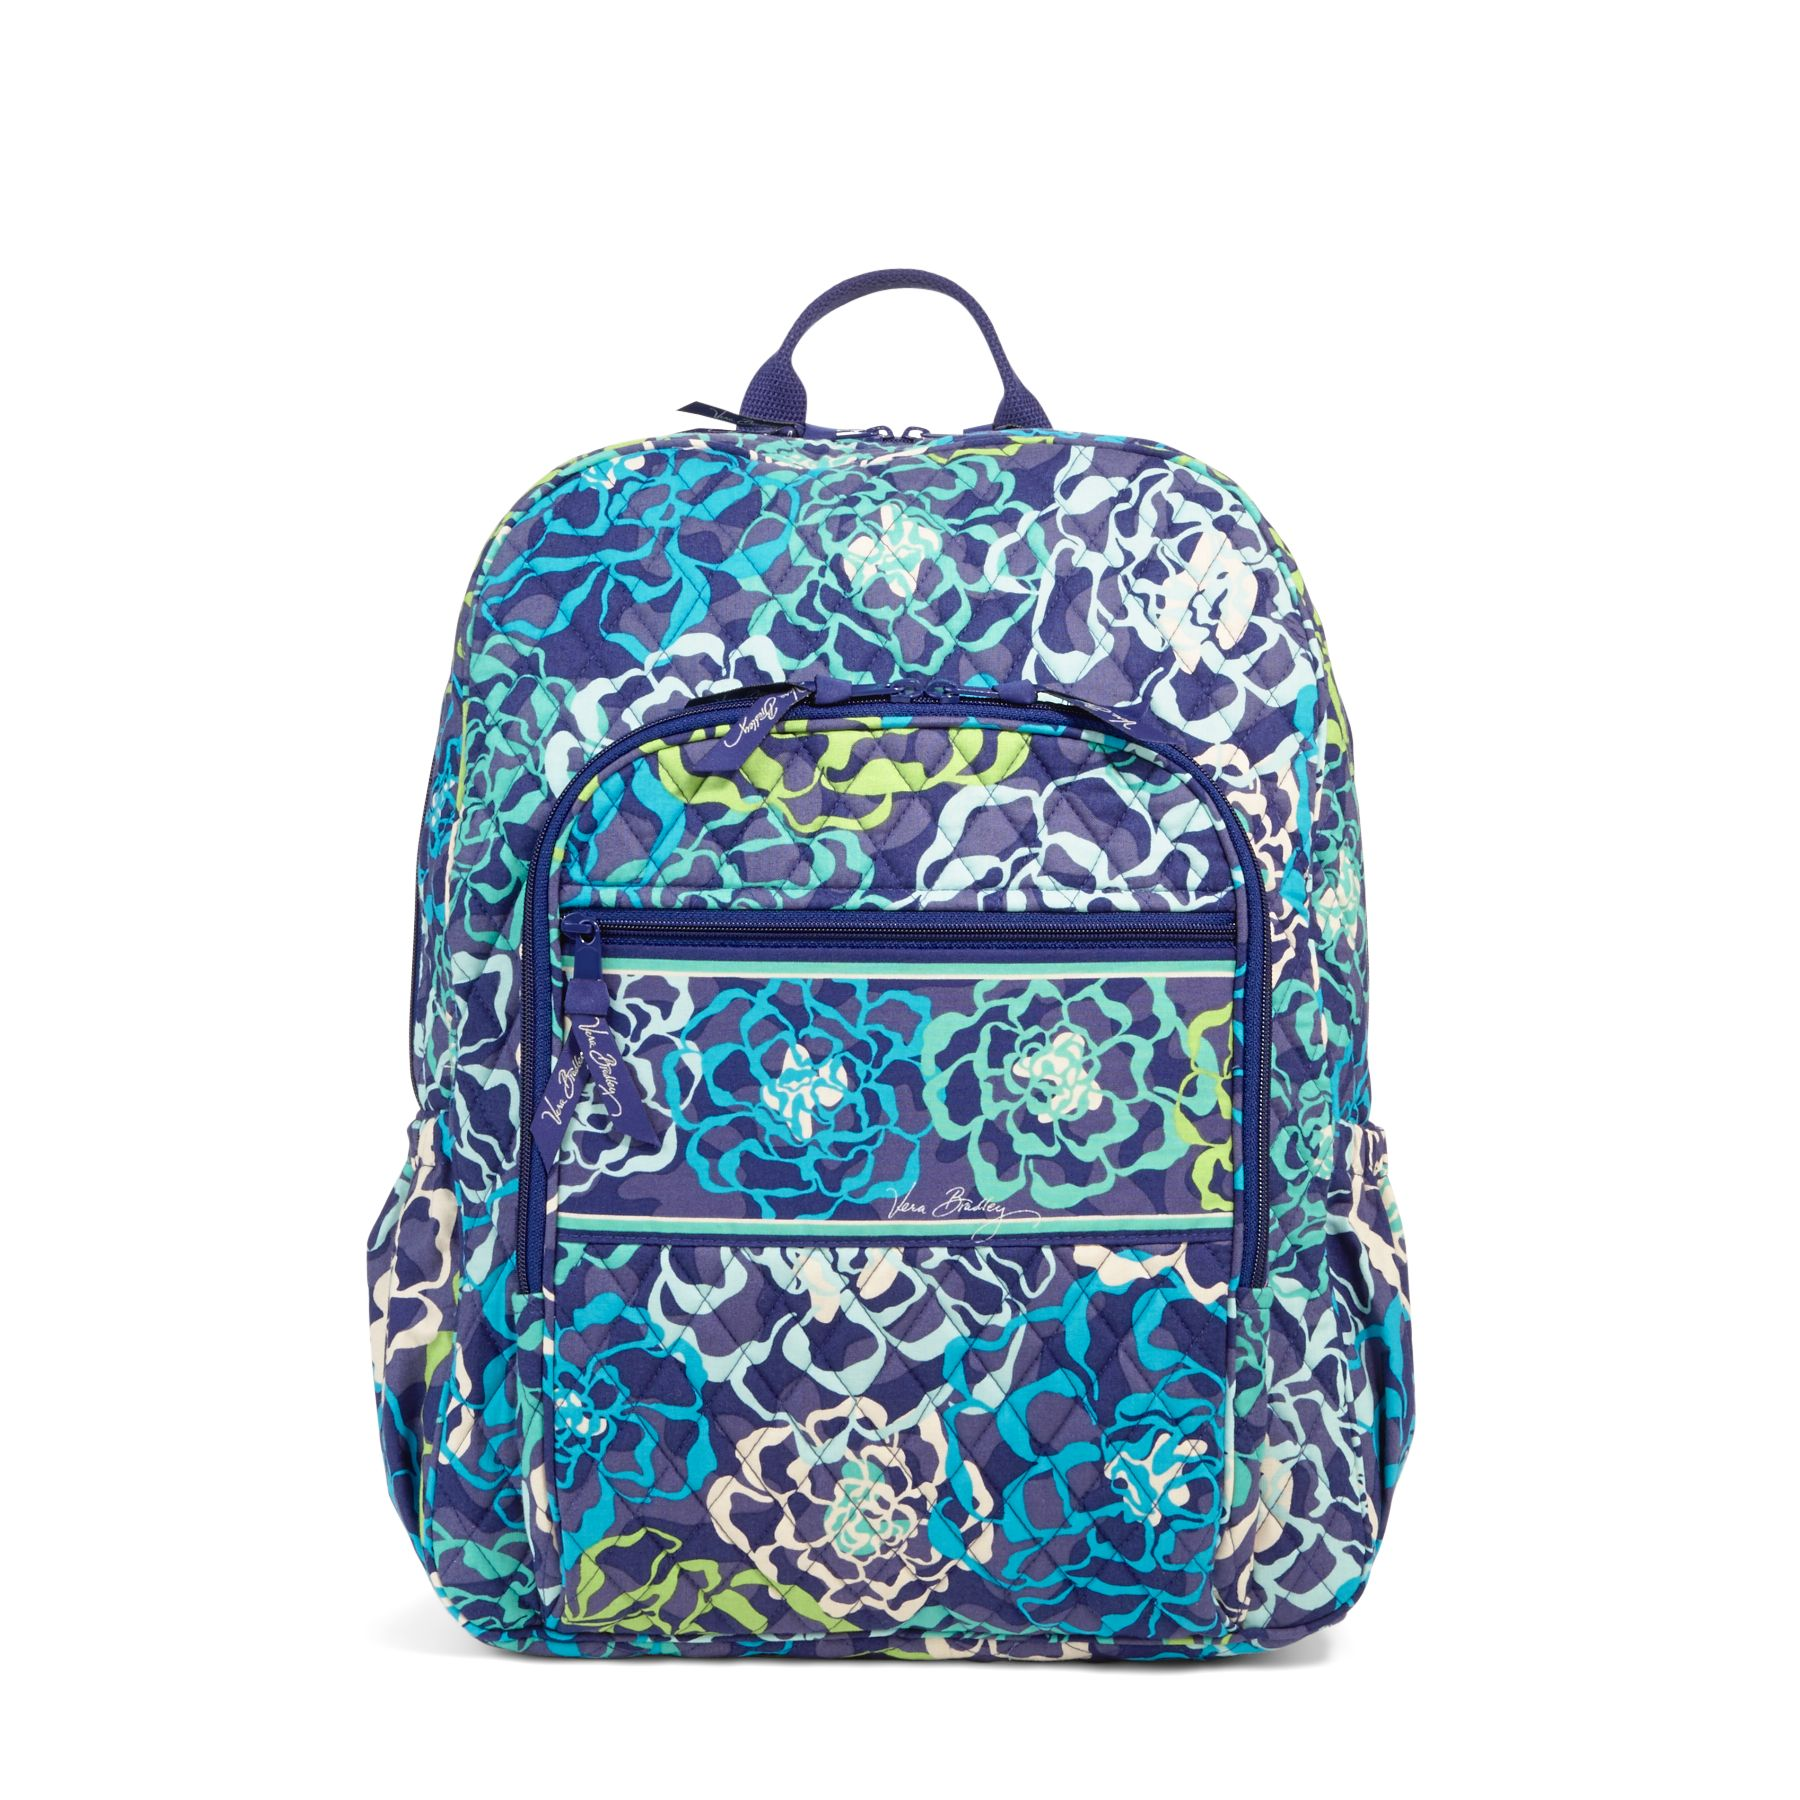 Campus backpack vera bradley sale   Warner brothers tour 5f3b1990618db